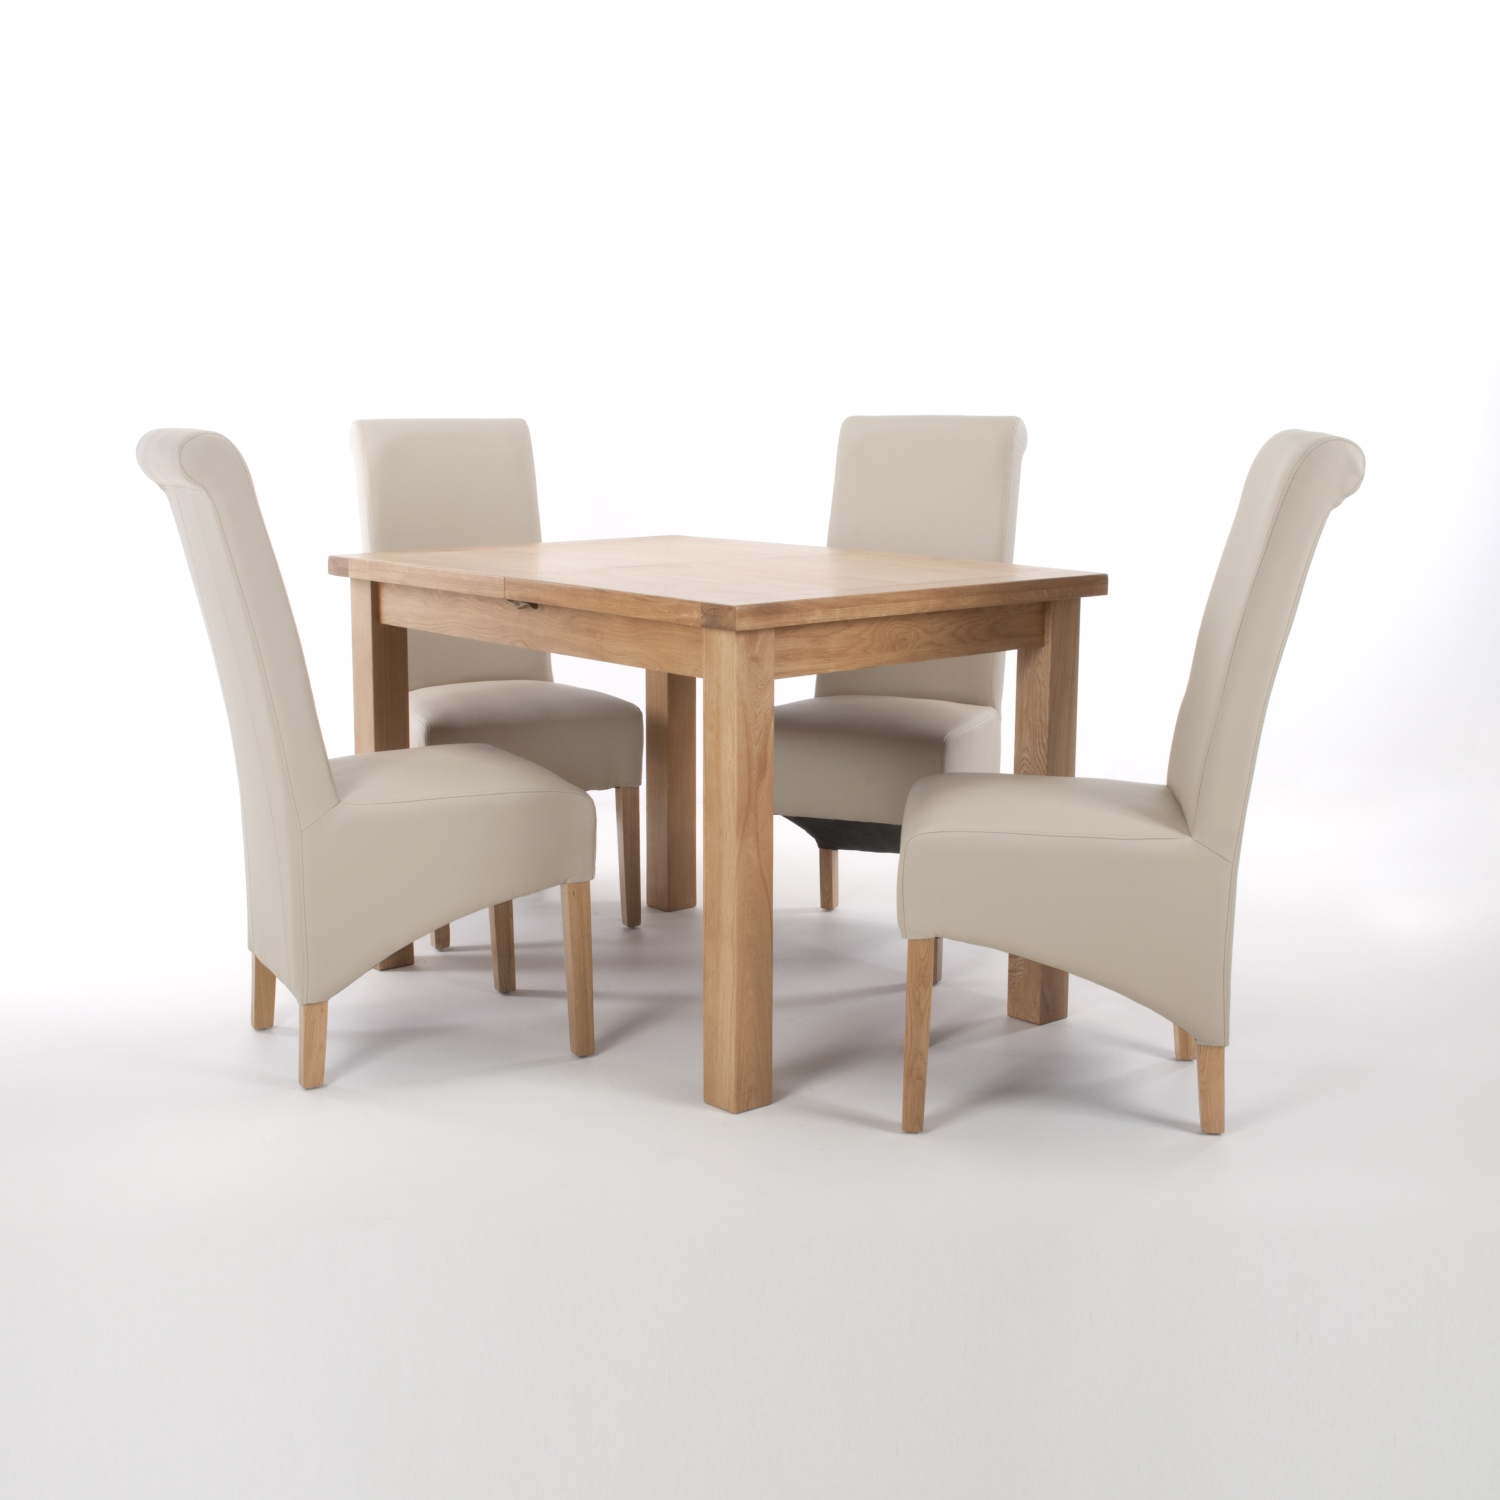 Solid Oak Extendable Dining Table with 4 Brown Matt Leather Match Roll Back Dining Chairs